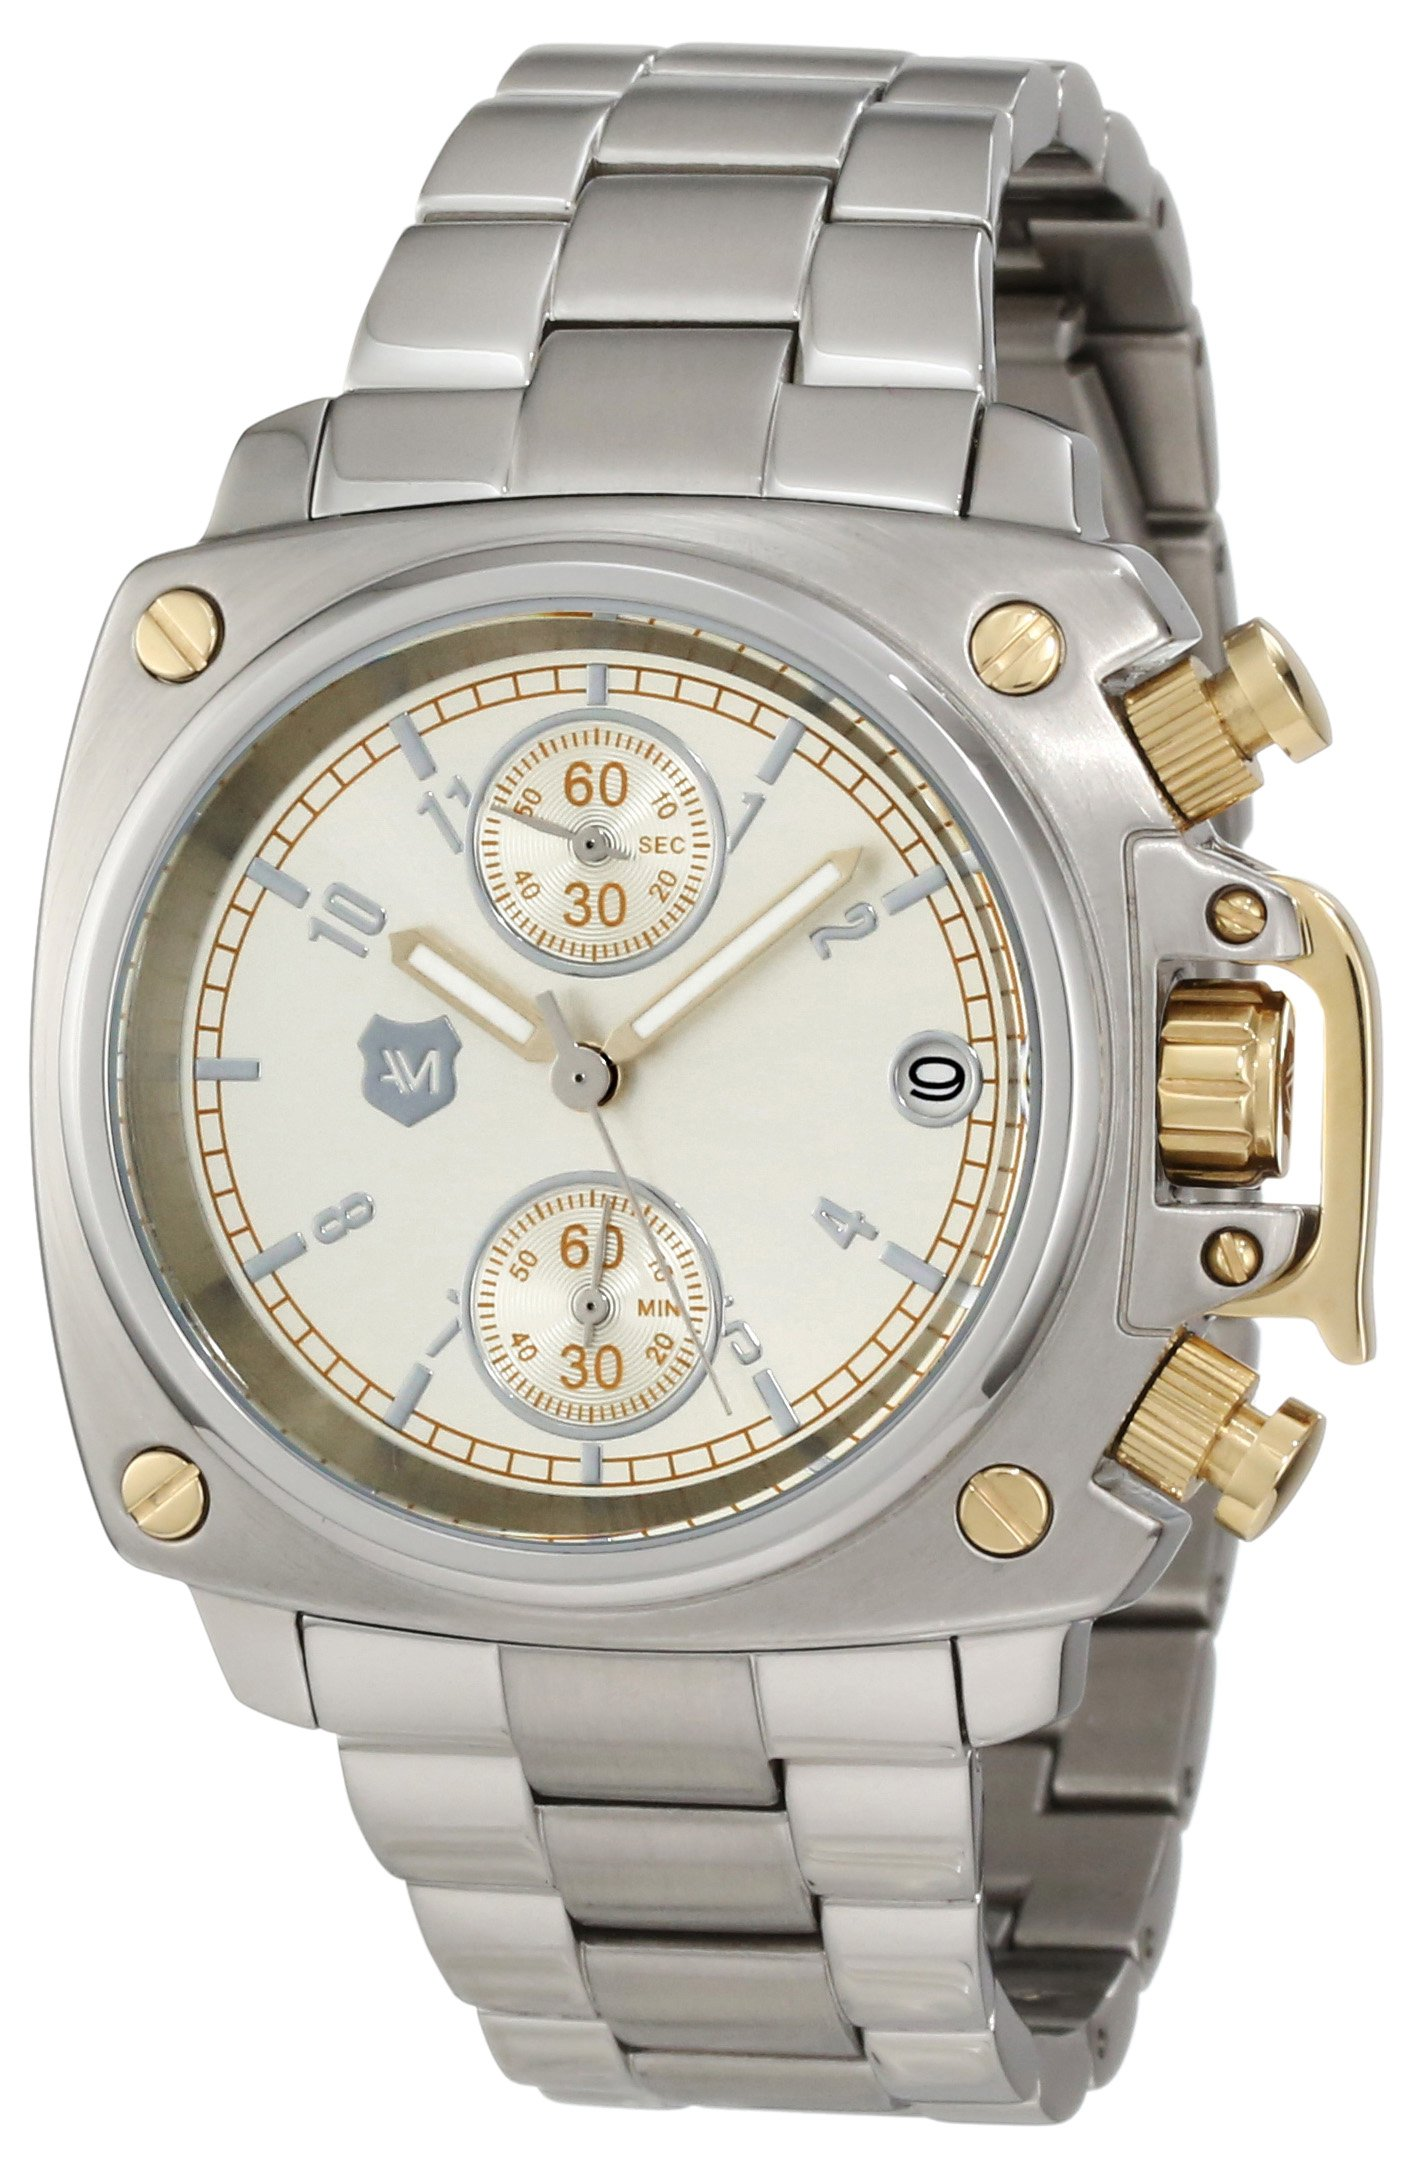 Andrew Marc Women's AM40020 Classic Chronograph Crown Cover Watch by Andrew Marc